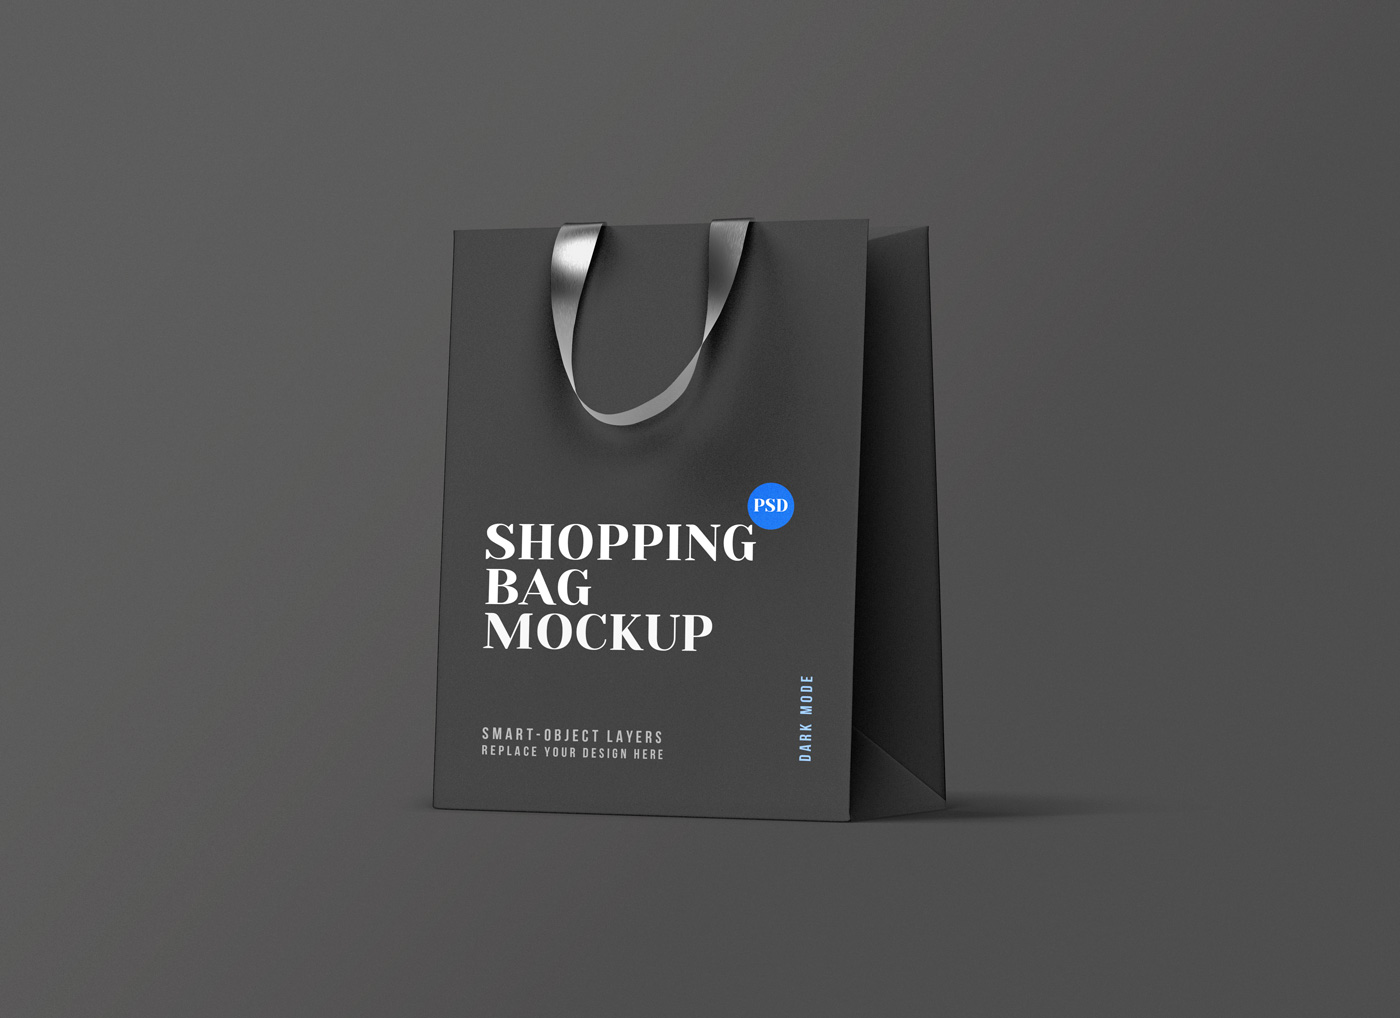 the best bag mockup to see the front and a bit of the side of the bag, which makes it a great choice to showcase your logos, artworks, badges, or texts. Shopping Bag Mockup